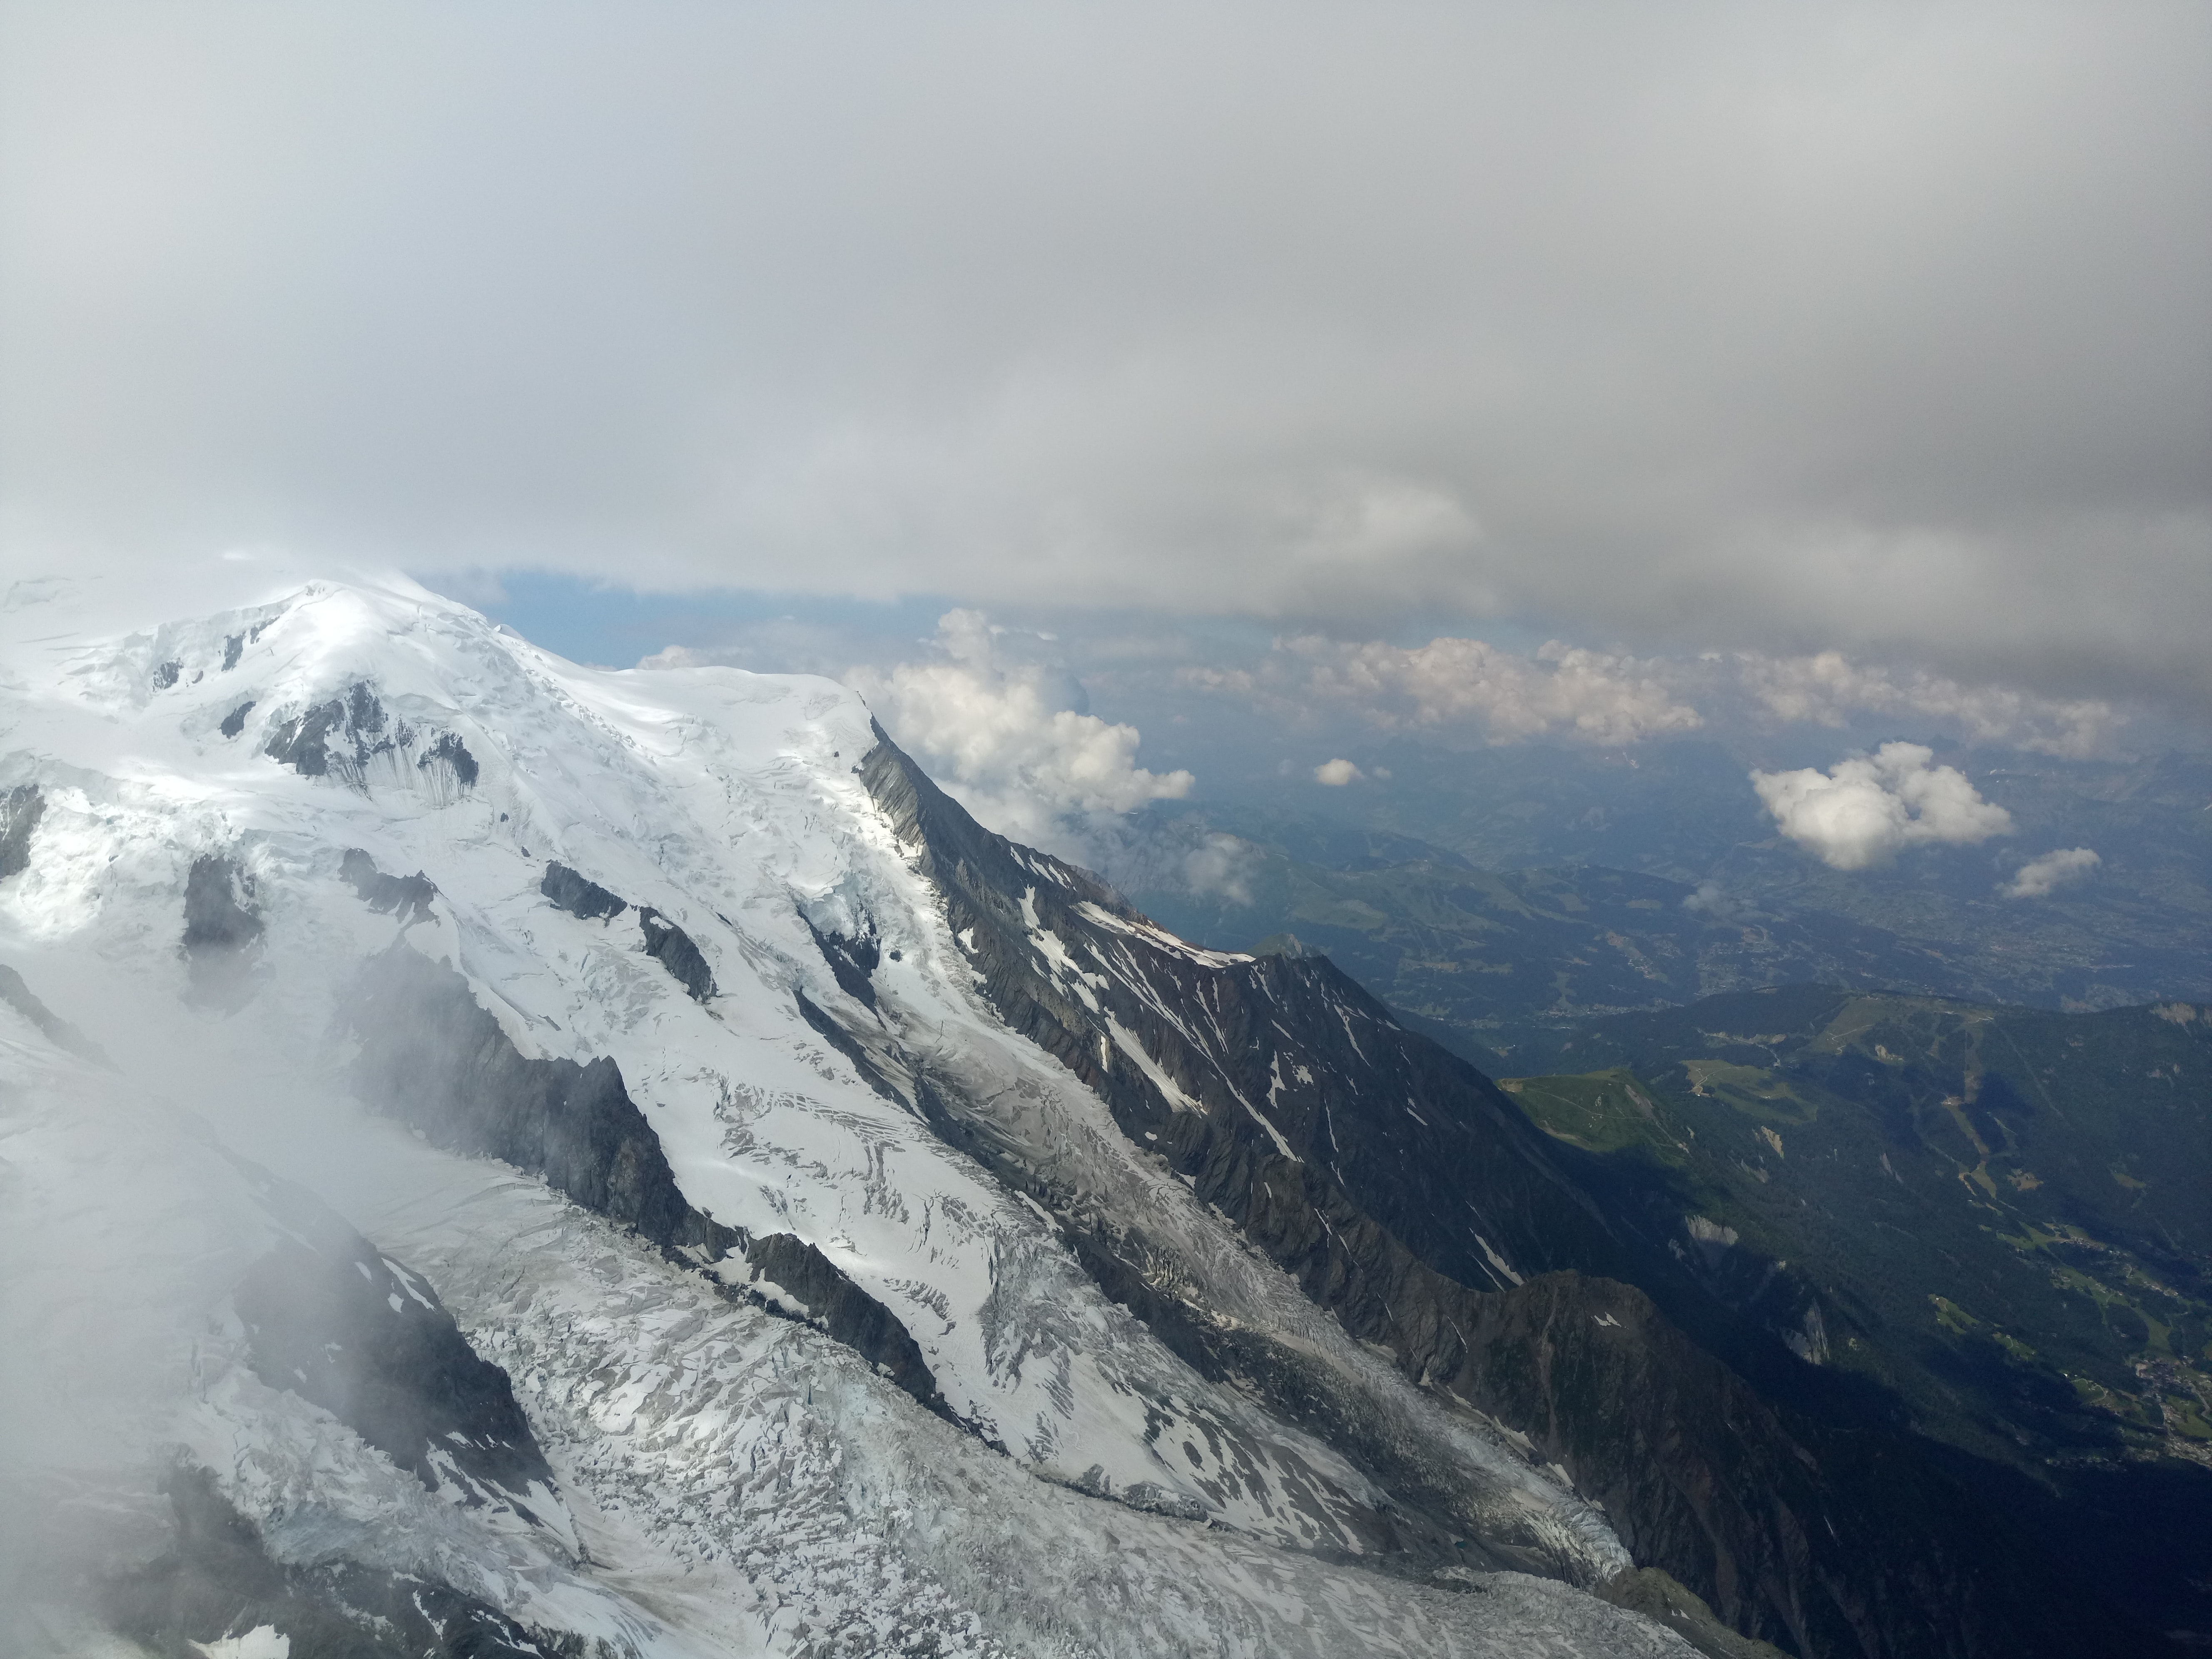 snow capped mountain under white clouds at daytime